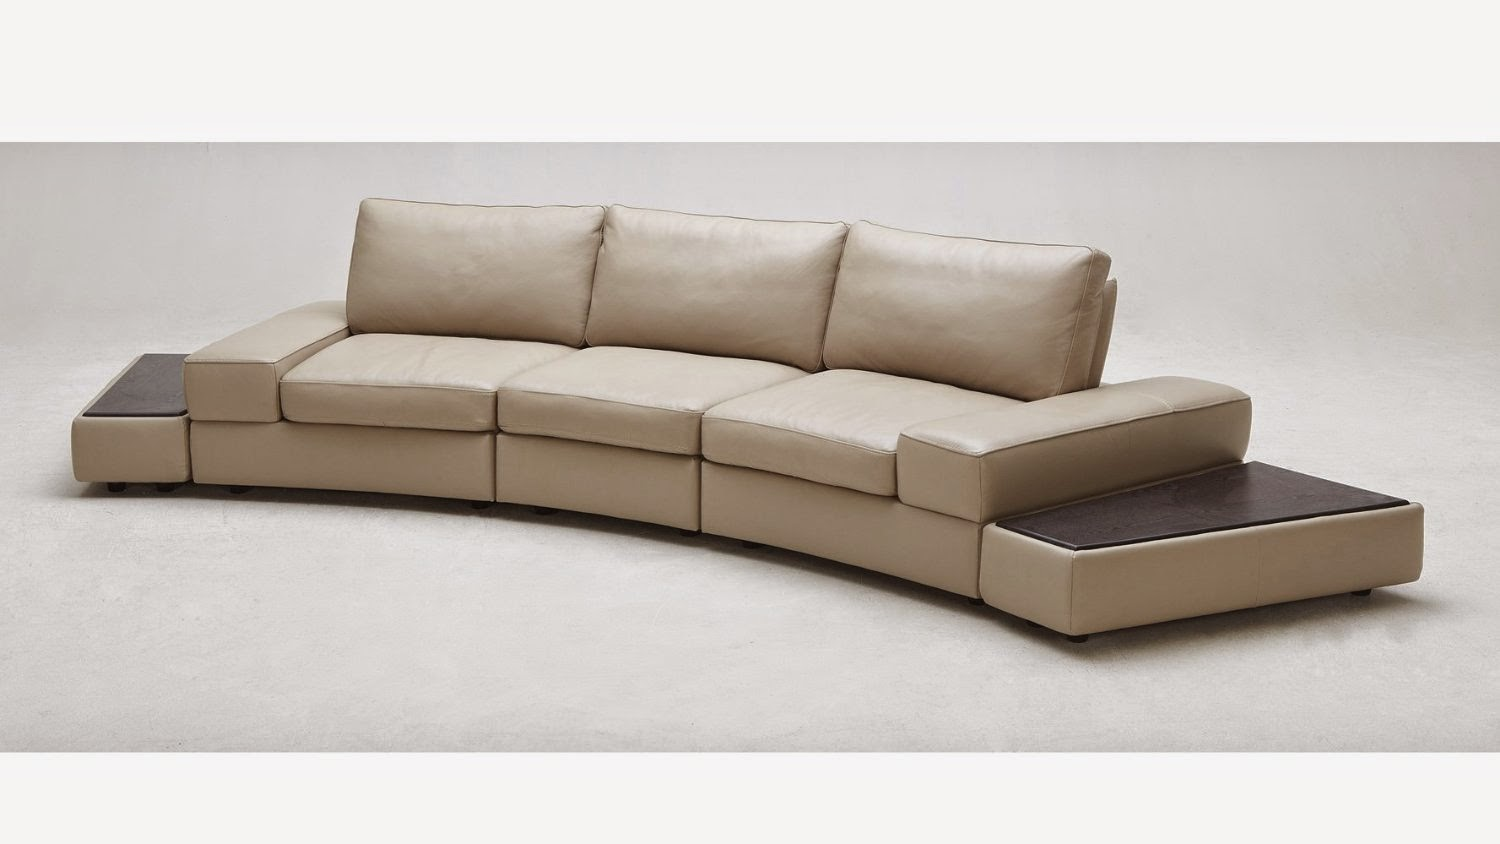 Big Couch Curved Sofa Couch For Sale Large Curved Corner Sofas